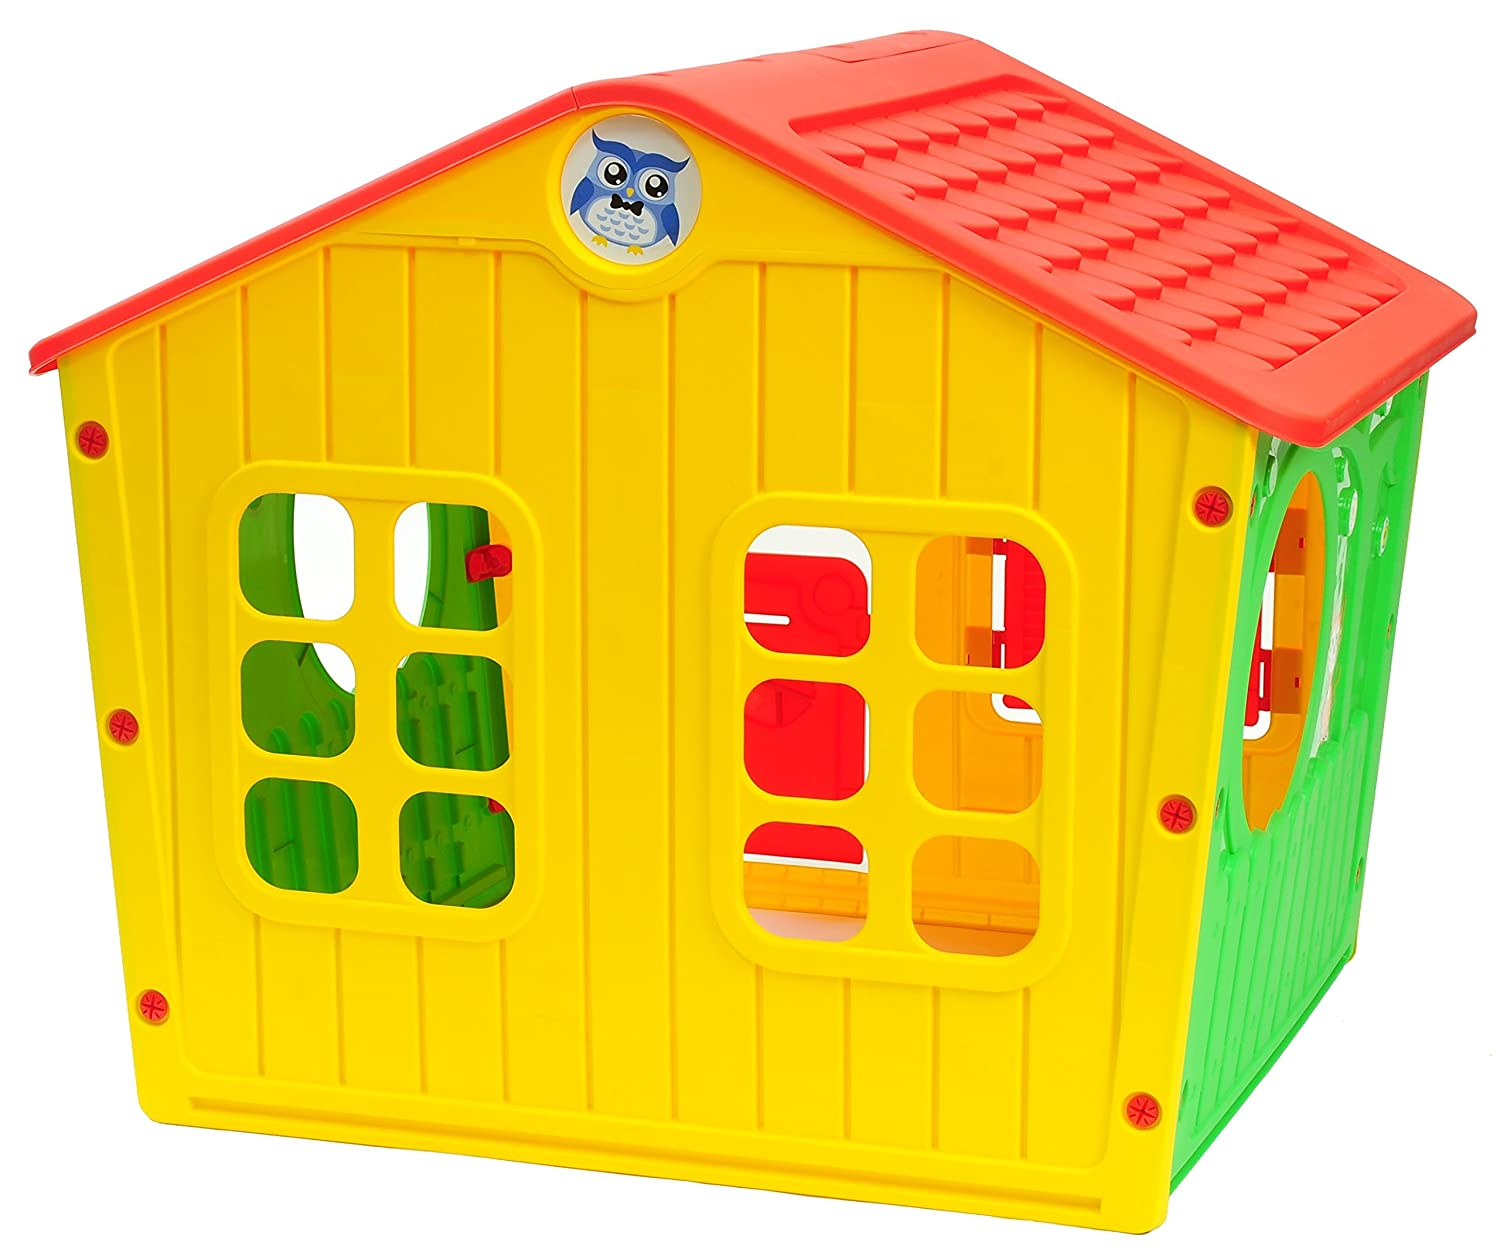 Amazon.com: Starplay Galilee Village Playhouse - Primary Color Combination: Garden & Outdoor